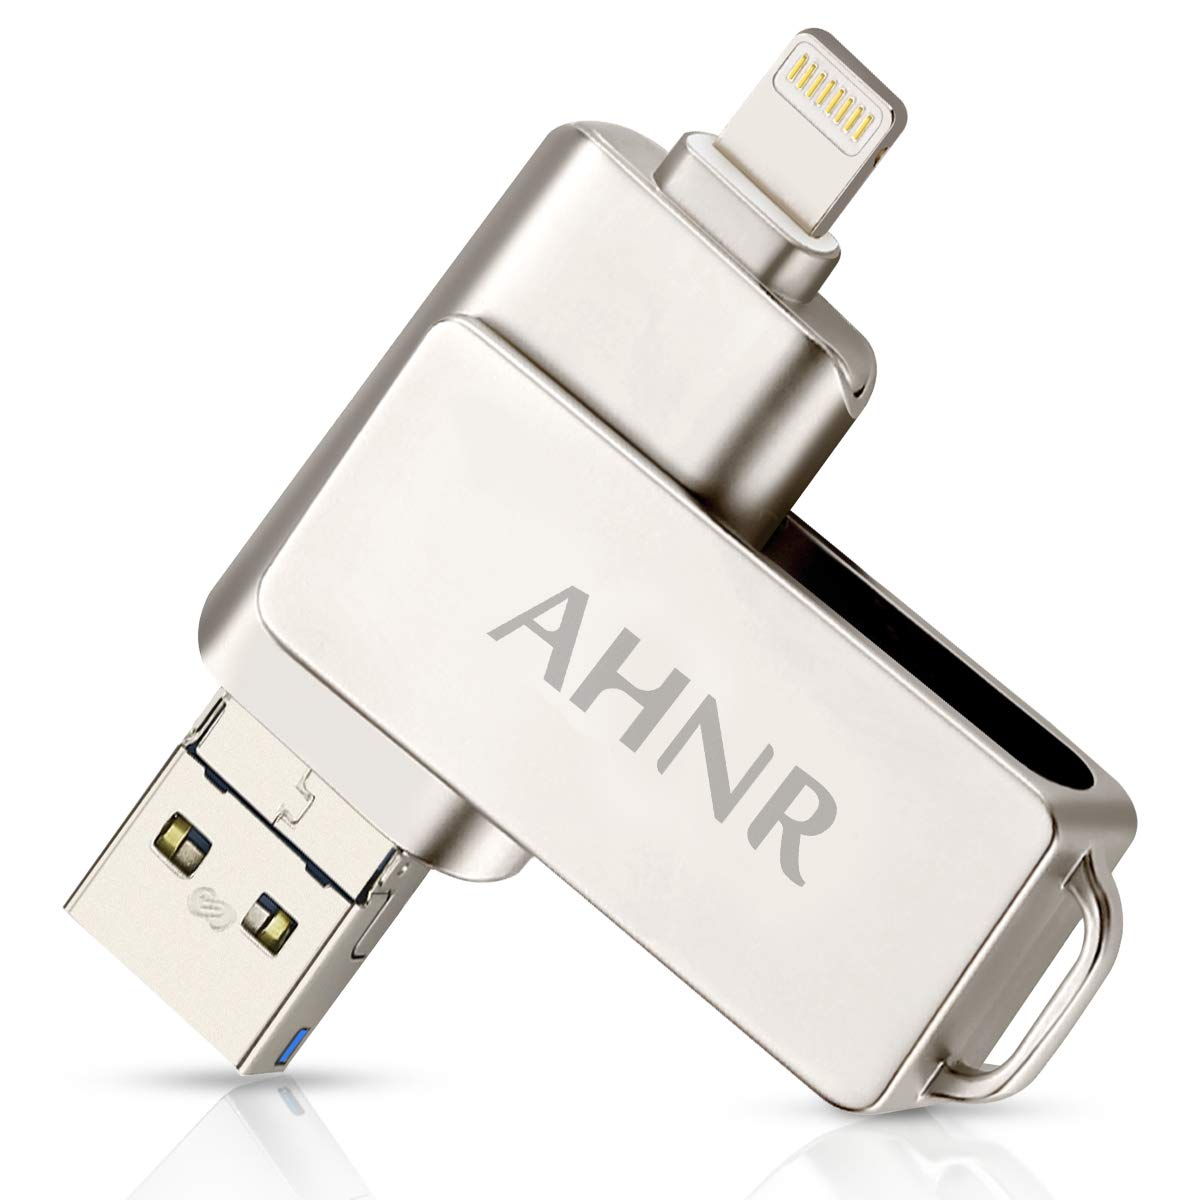 AHNR Thumb Drives External Micro USB Memory Storage Pen Drive